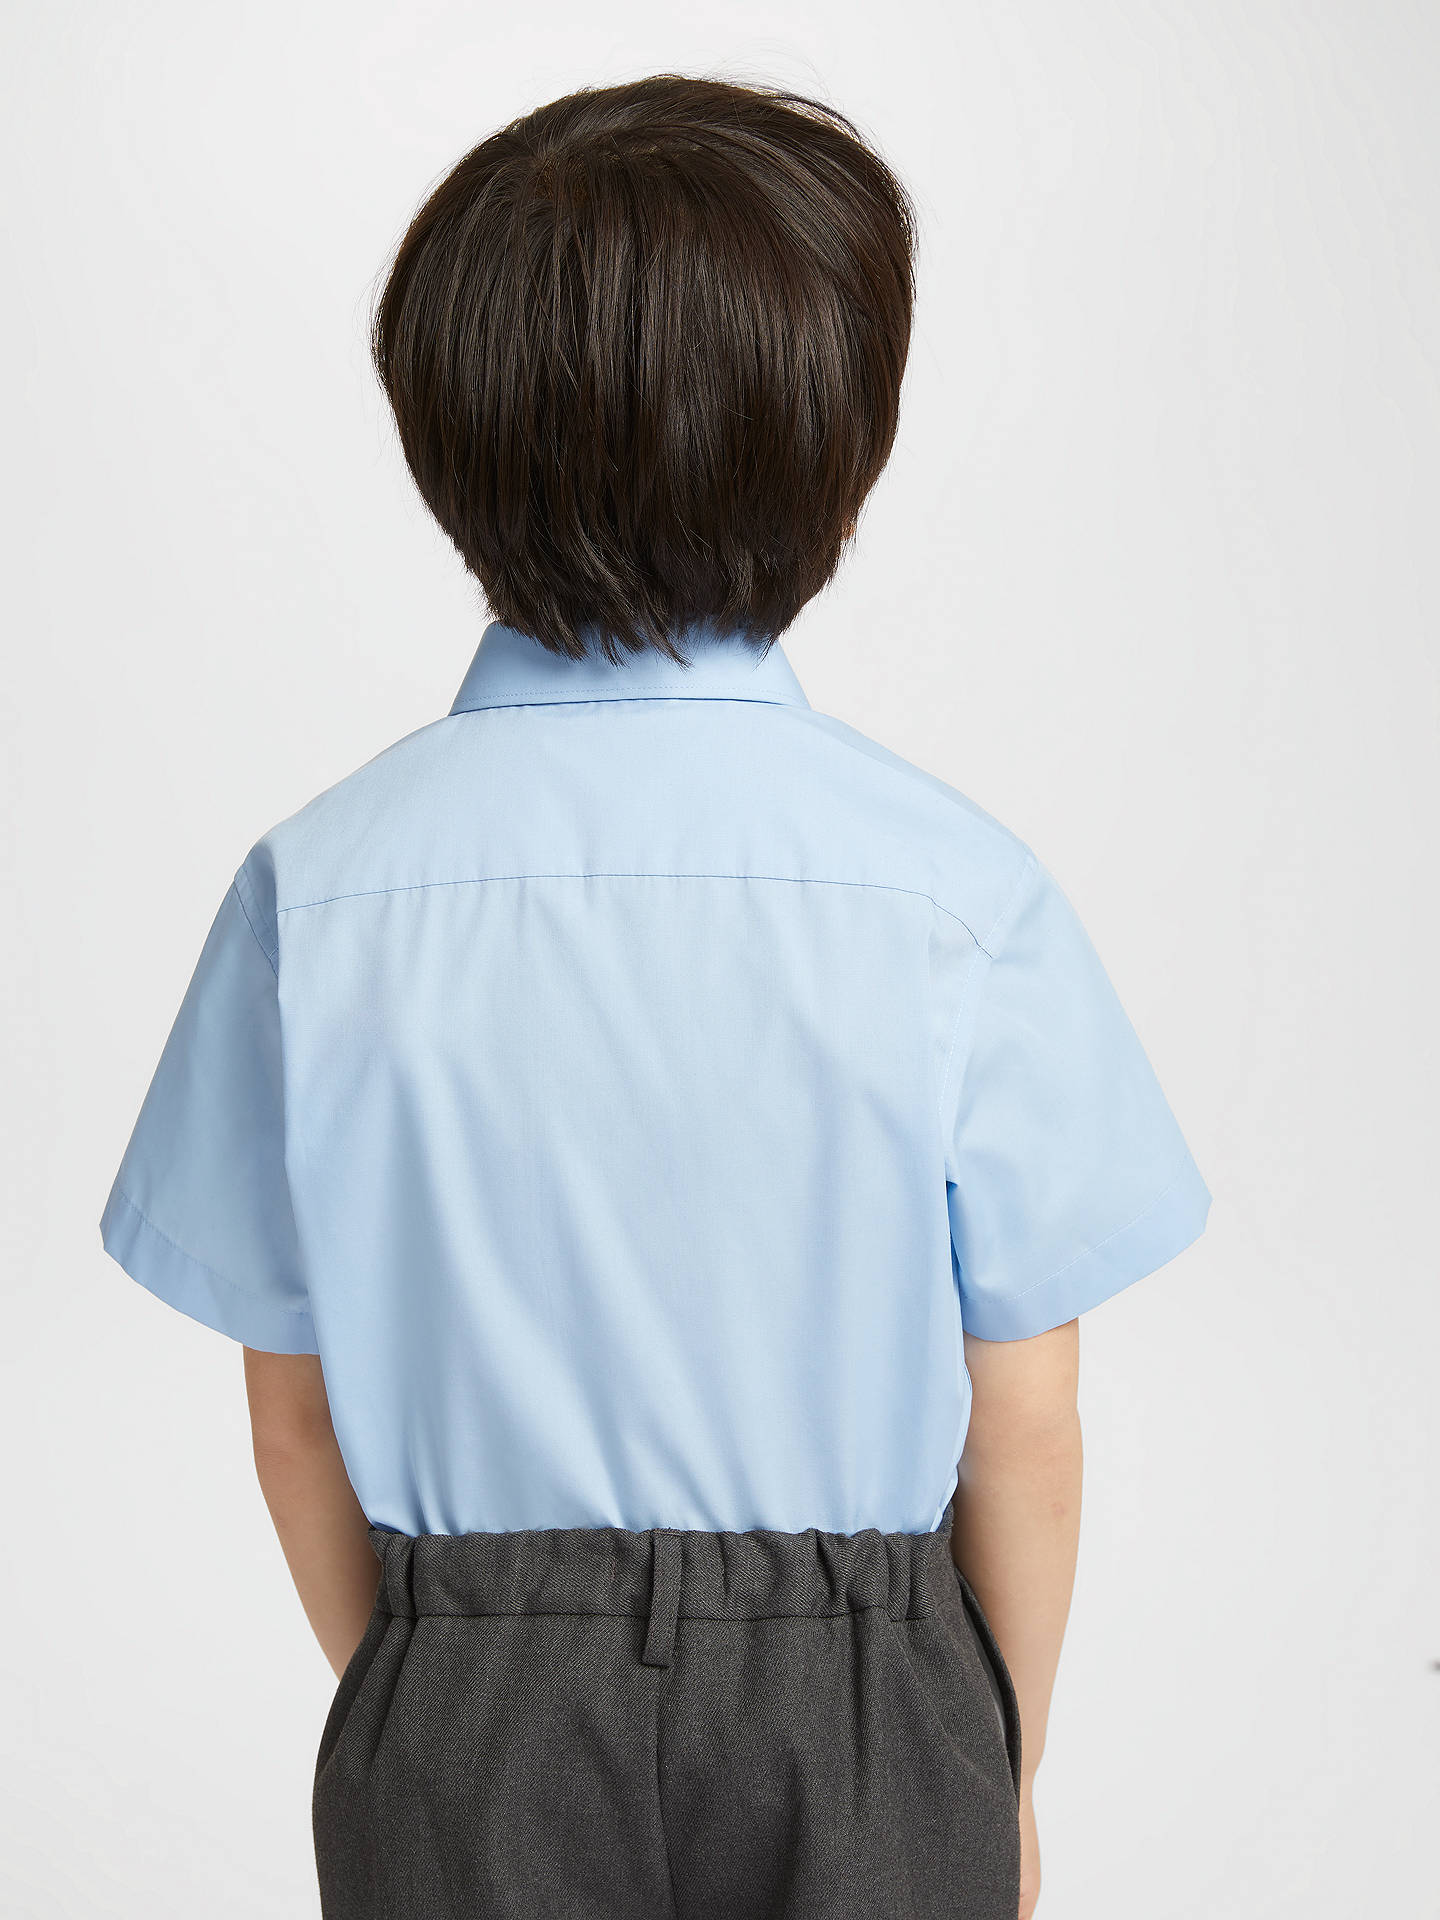 Buy John Lewis & Partners Easy Care Short Sleeve School Shirt, Pack of 2, Blue, 5 years Online at johnlewis.com